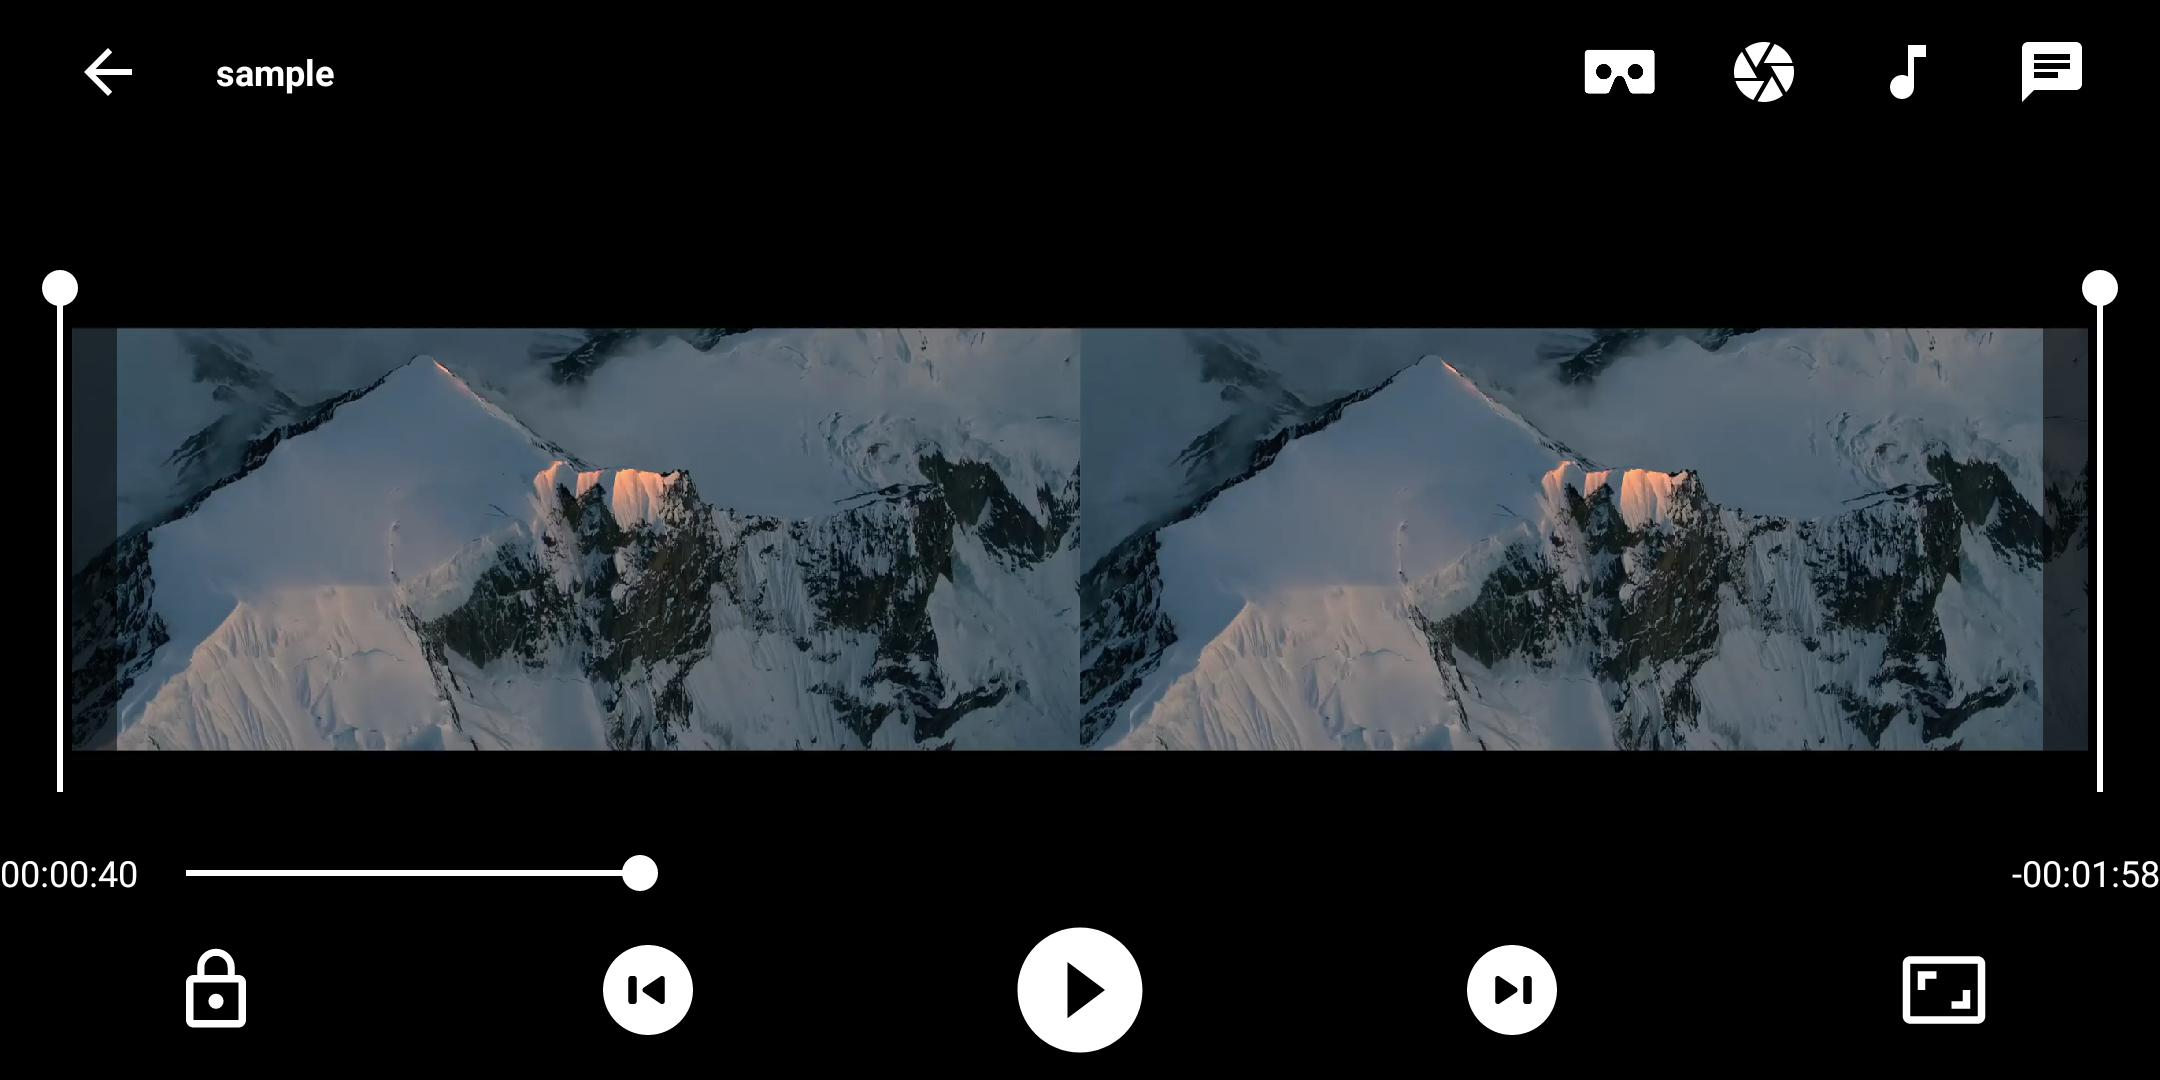 VR Player - Virtual Reality for Android - APK Download